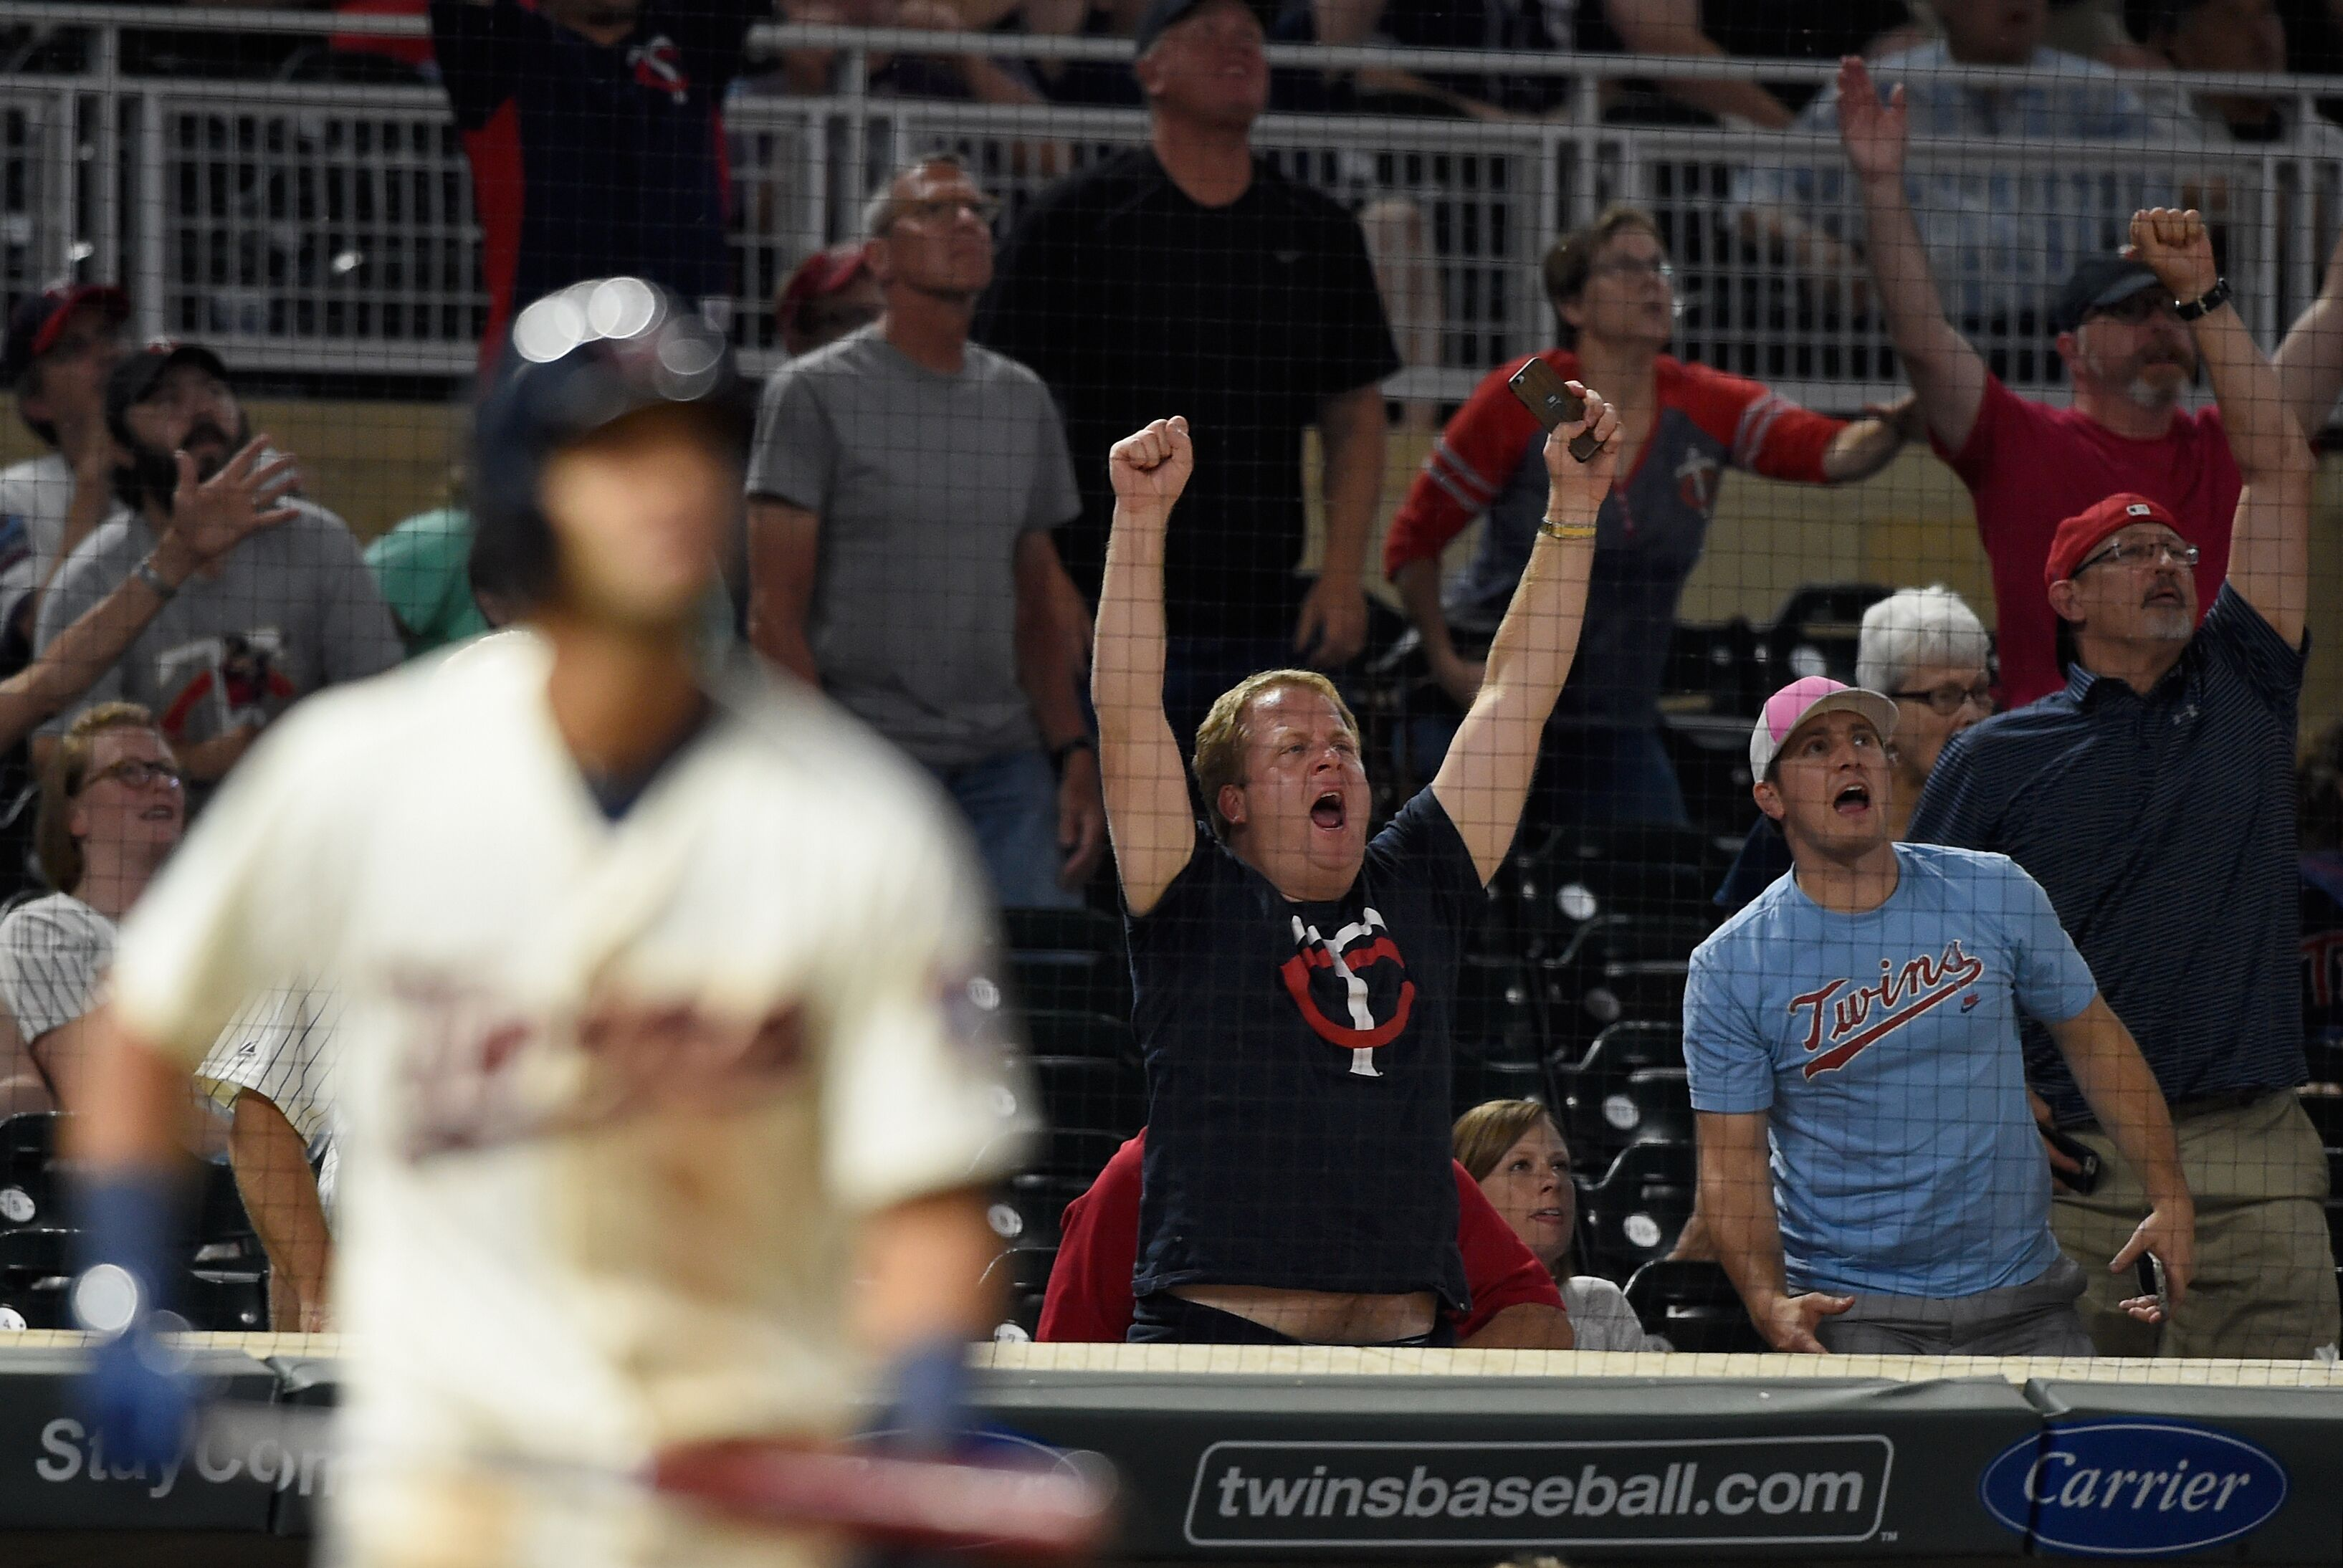 Minnesota Twins What A Difference A Year Makes For Twins Fans